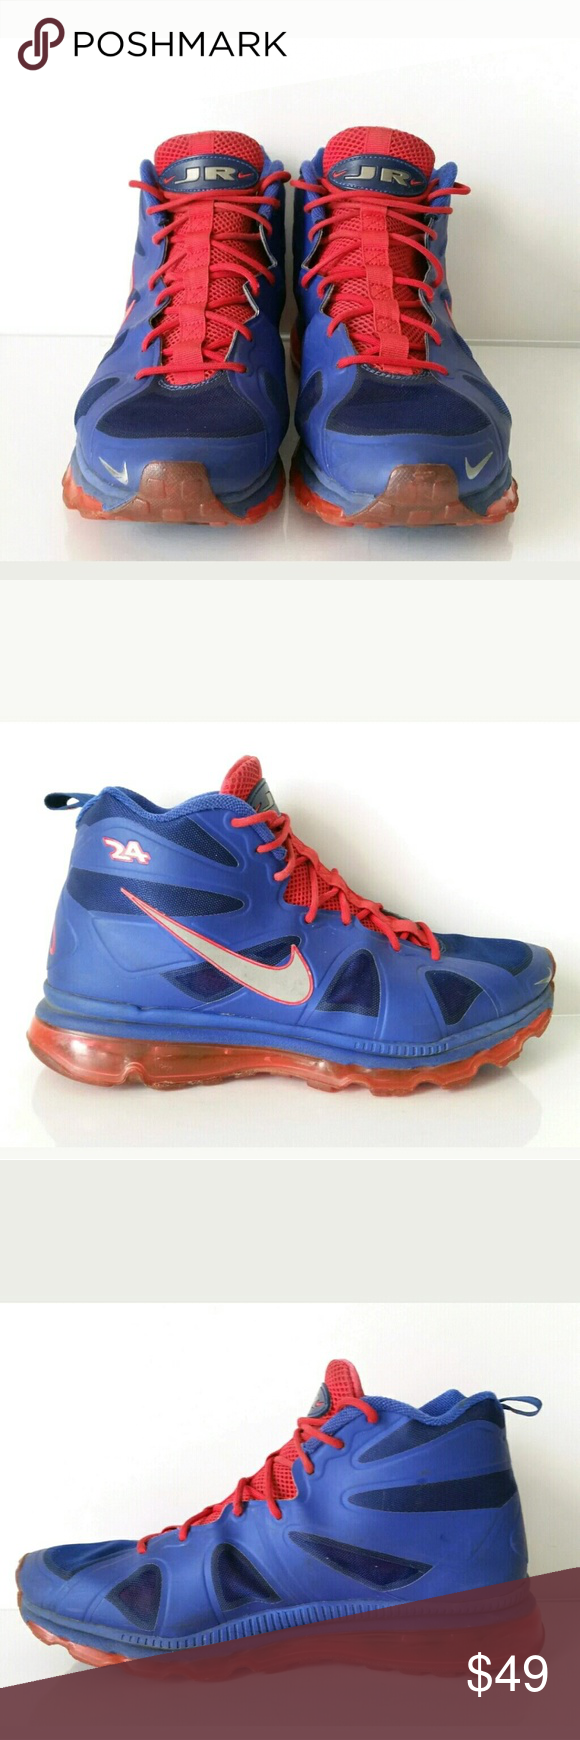 33d23c68dc Nike Air Max Ken Griffey Jr. Fury Fuse Size 11.5 Up for your consideration  is